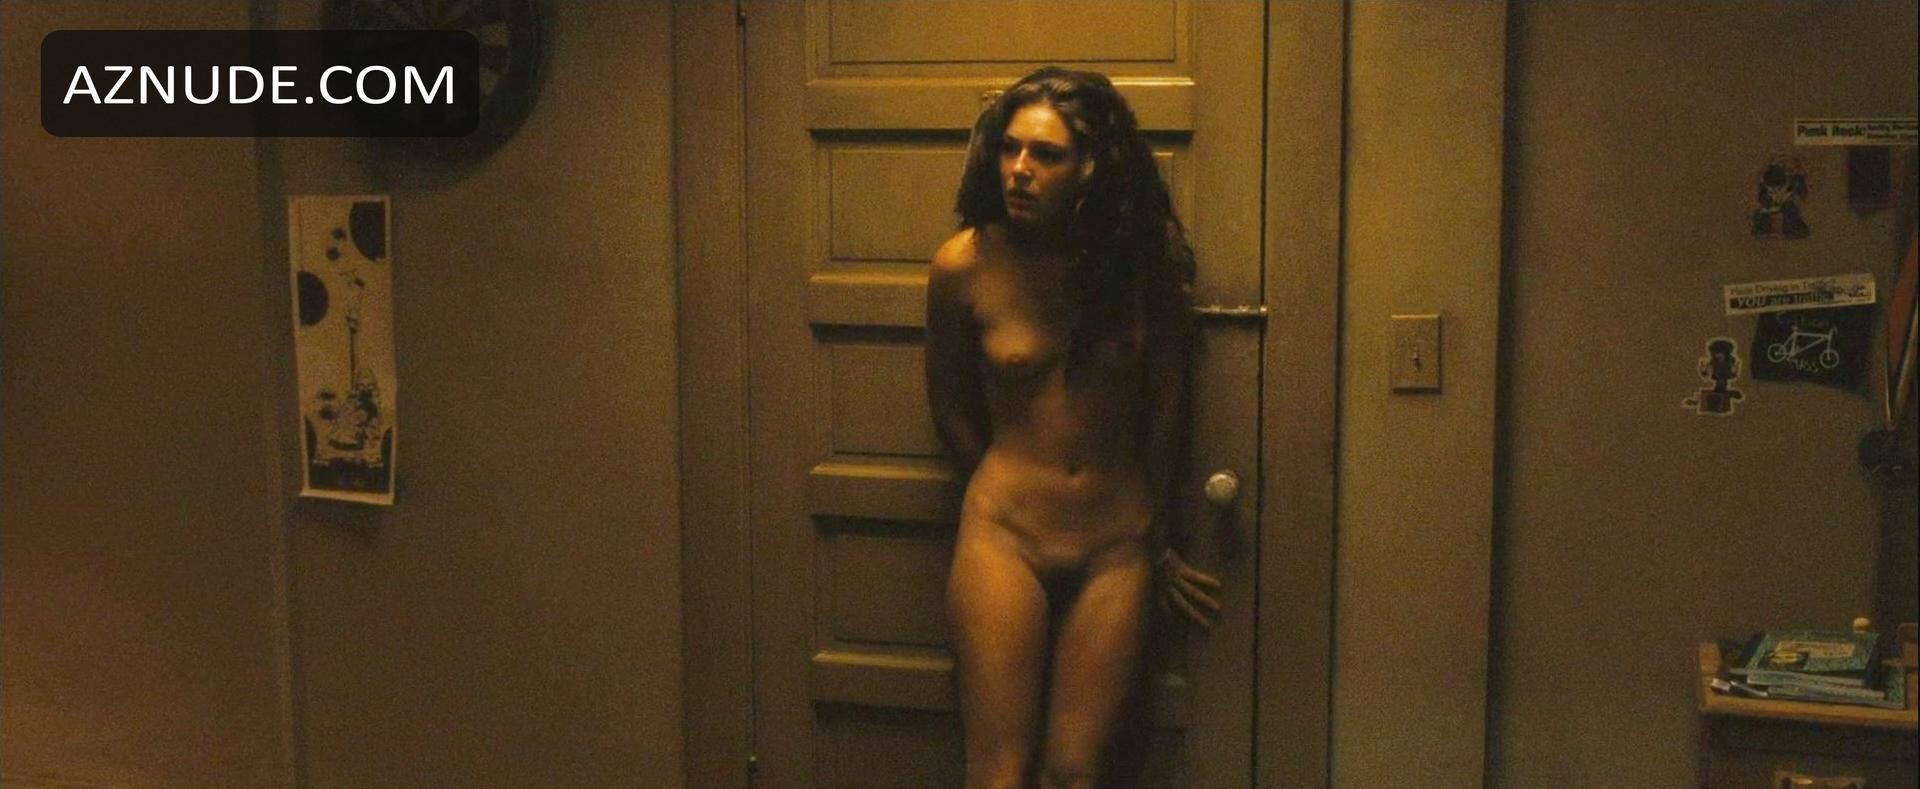 boobs fakes katic Stana nude